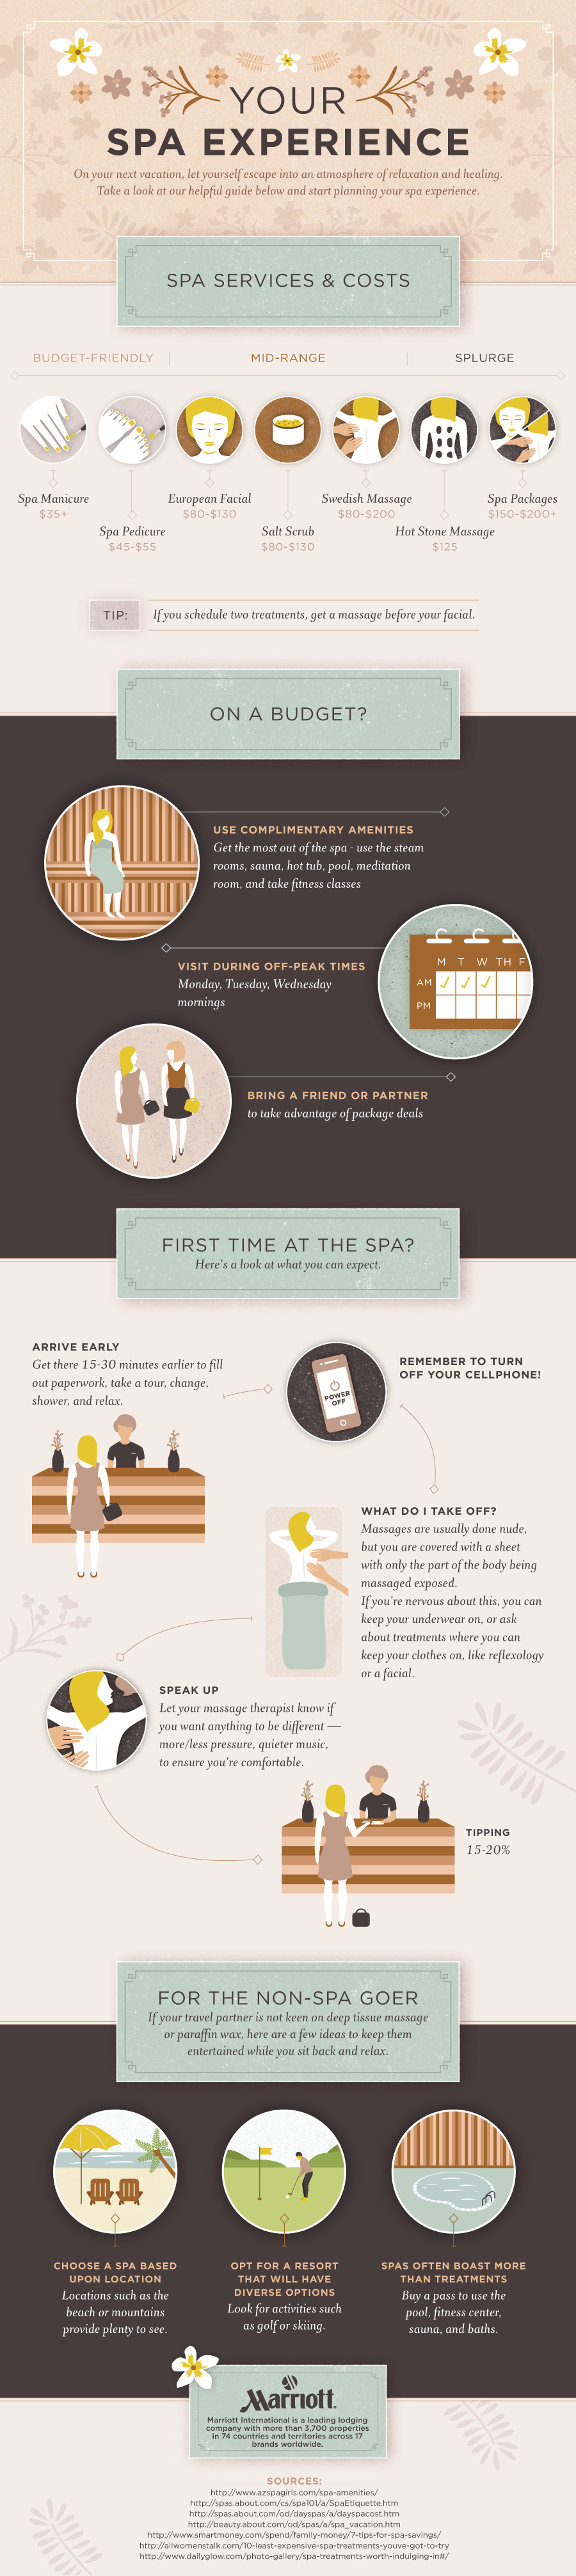 Tips For Your Spa Experience